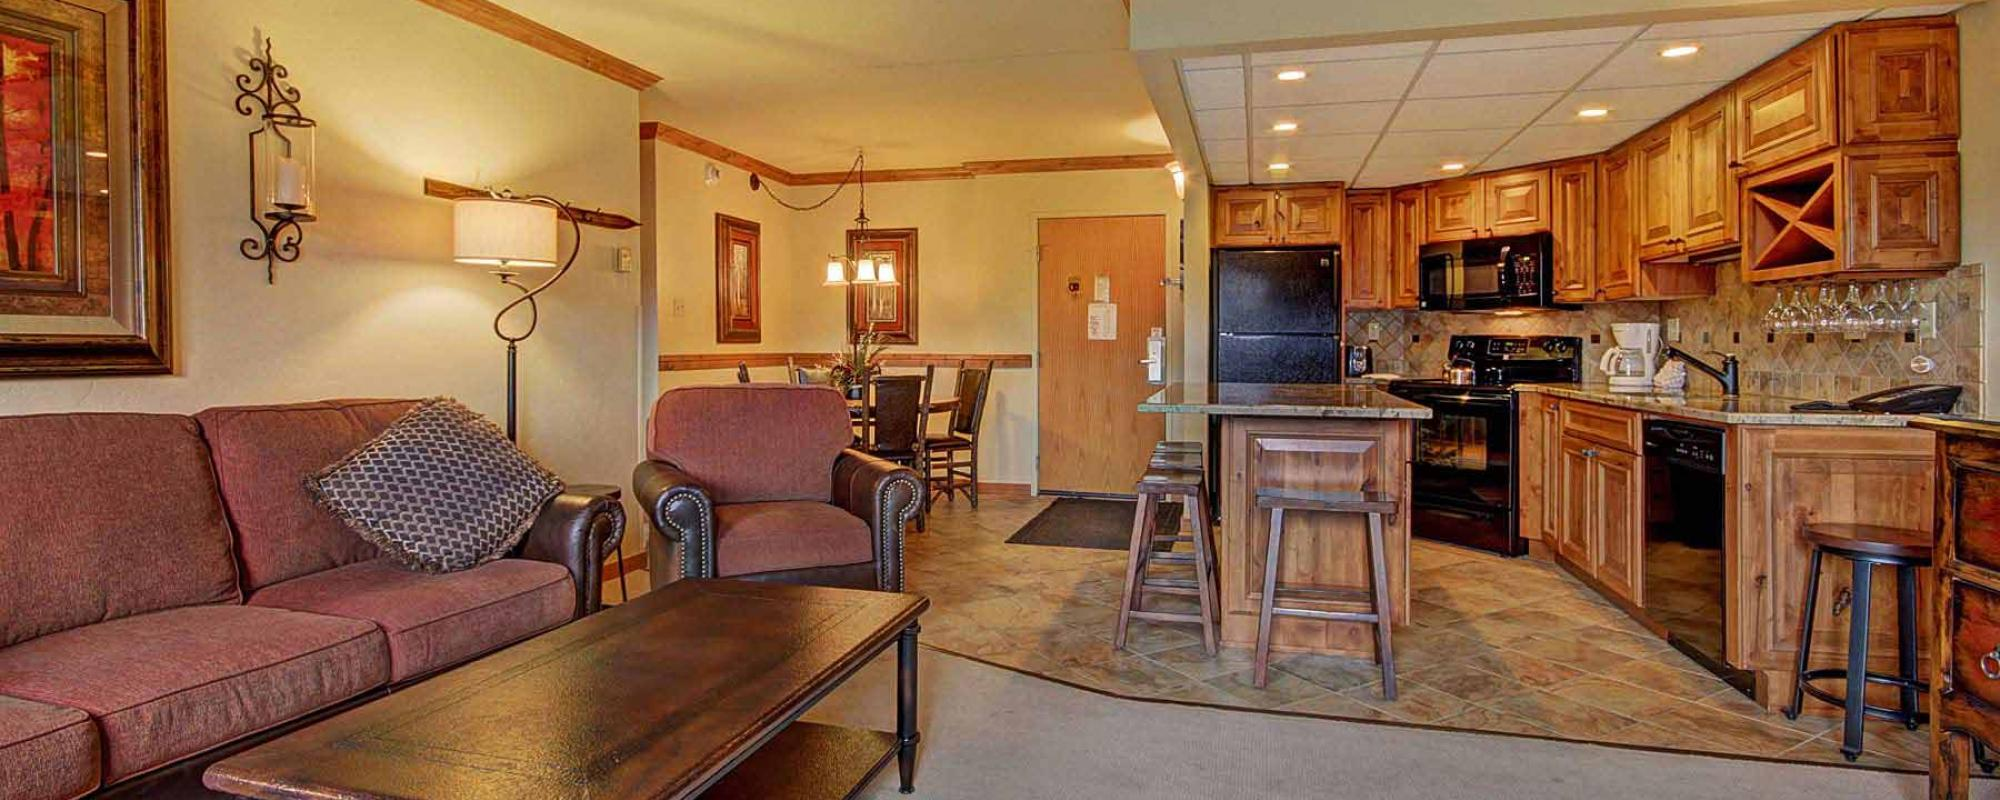 One bedroom Condo at Beaver Run Resort in Breckenridge